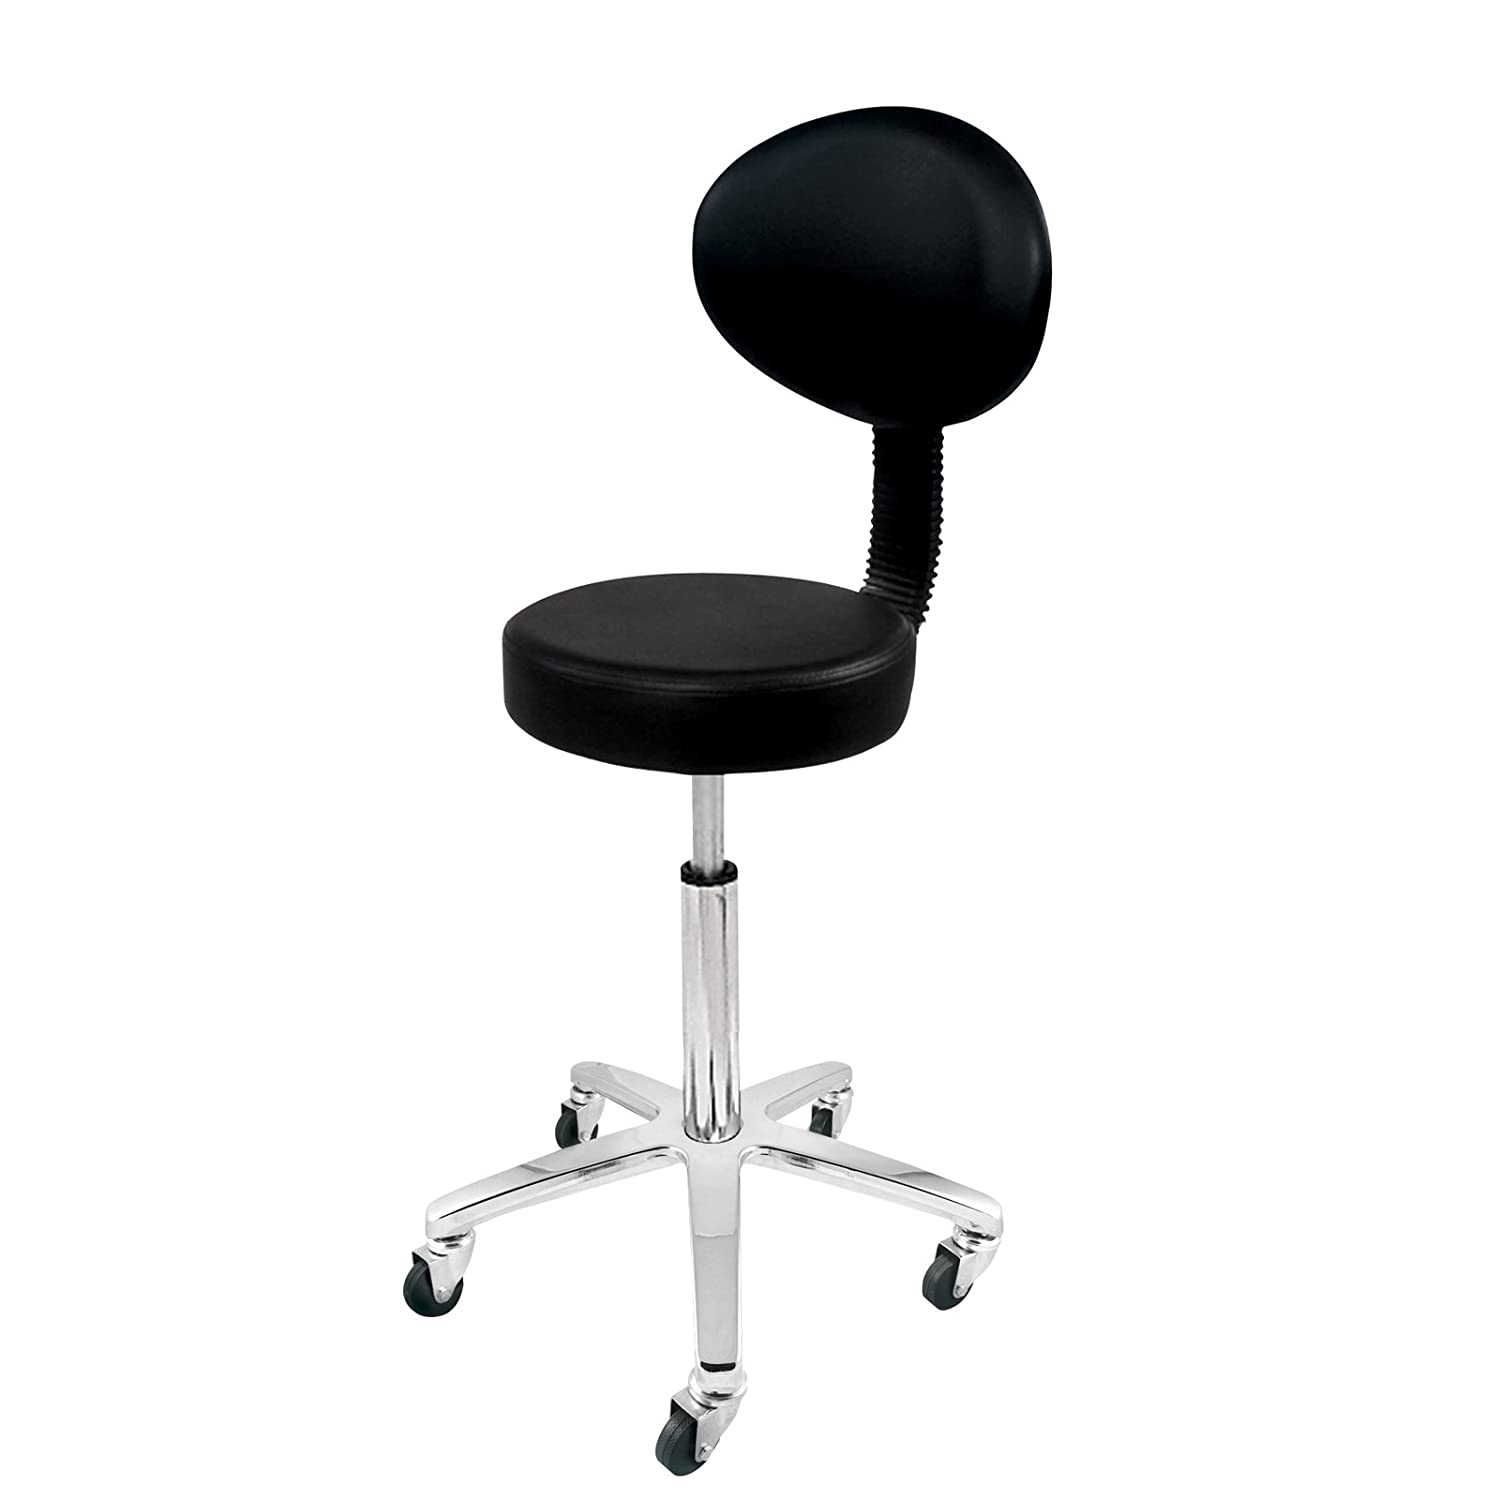 H210456 - Deo Black Cutting Beauty Salon Tatoo Spa Gas Lift Stool with Backrest